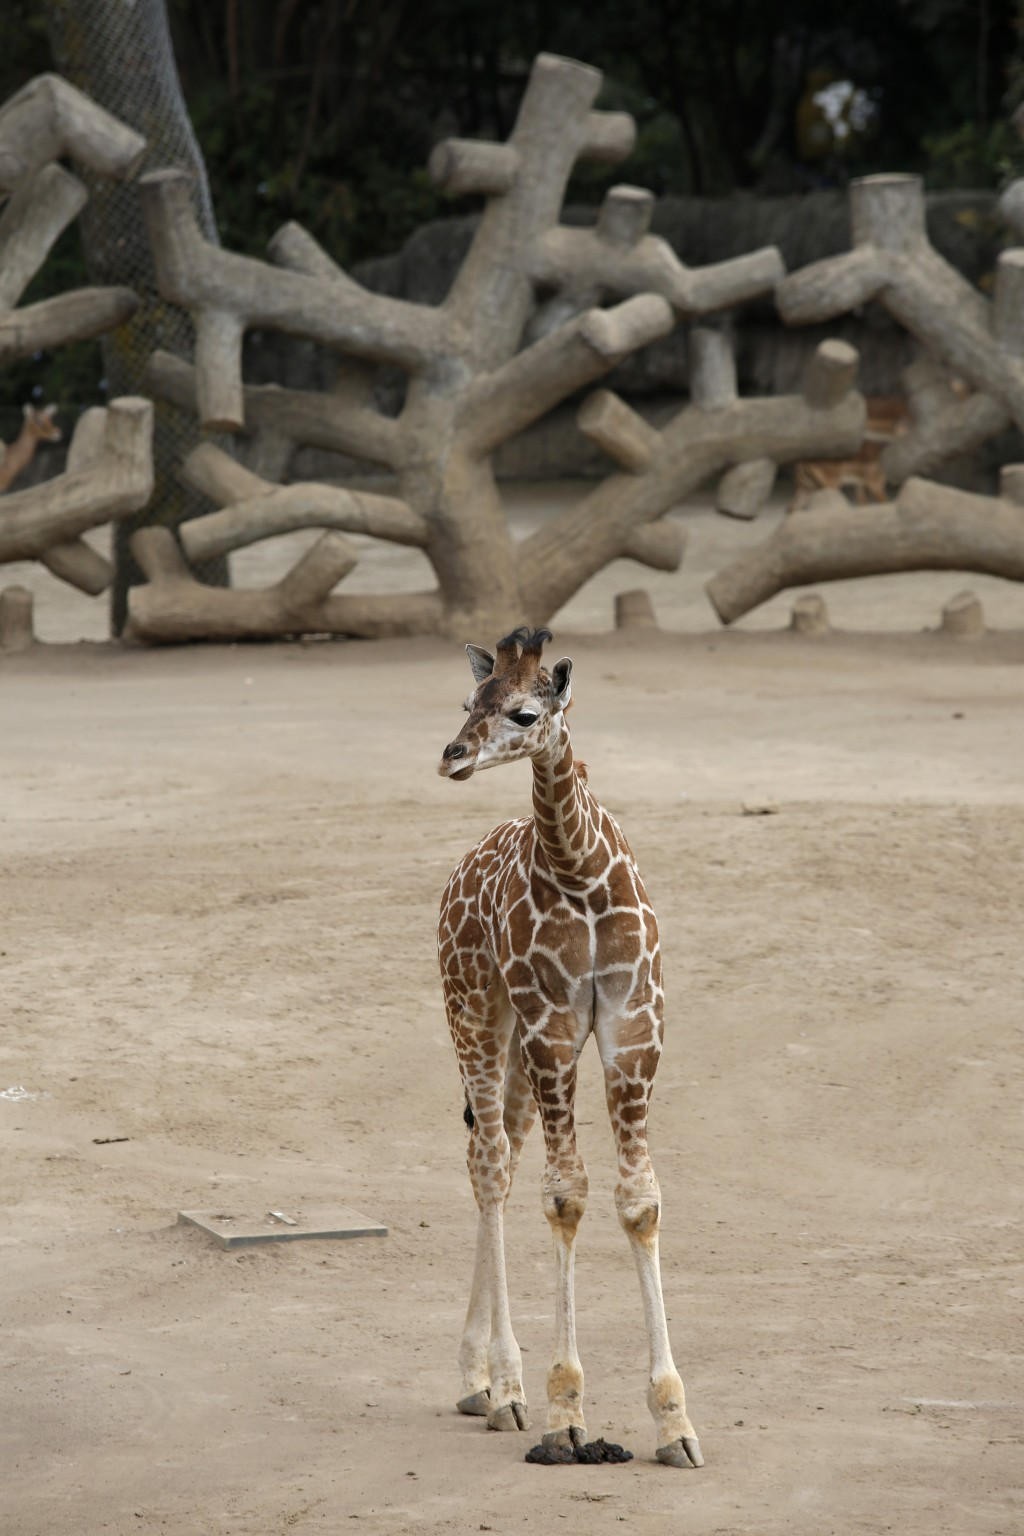 A two-month-old giraffe stands in her enclosure at the Chapultepec Zoo in Mexico City, Sunday, Dec. 29, 2019. The Mexico City zoo is celebrating its s...